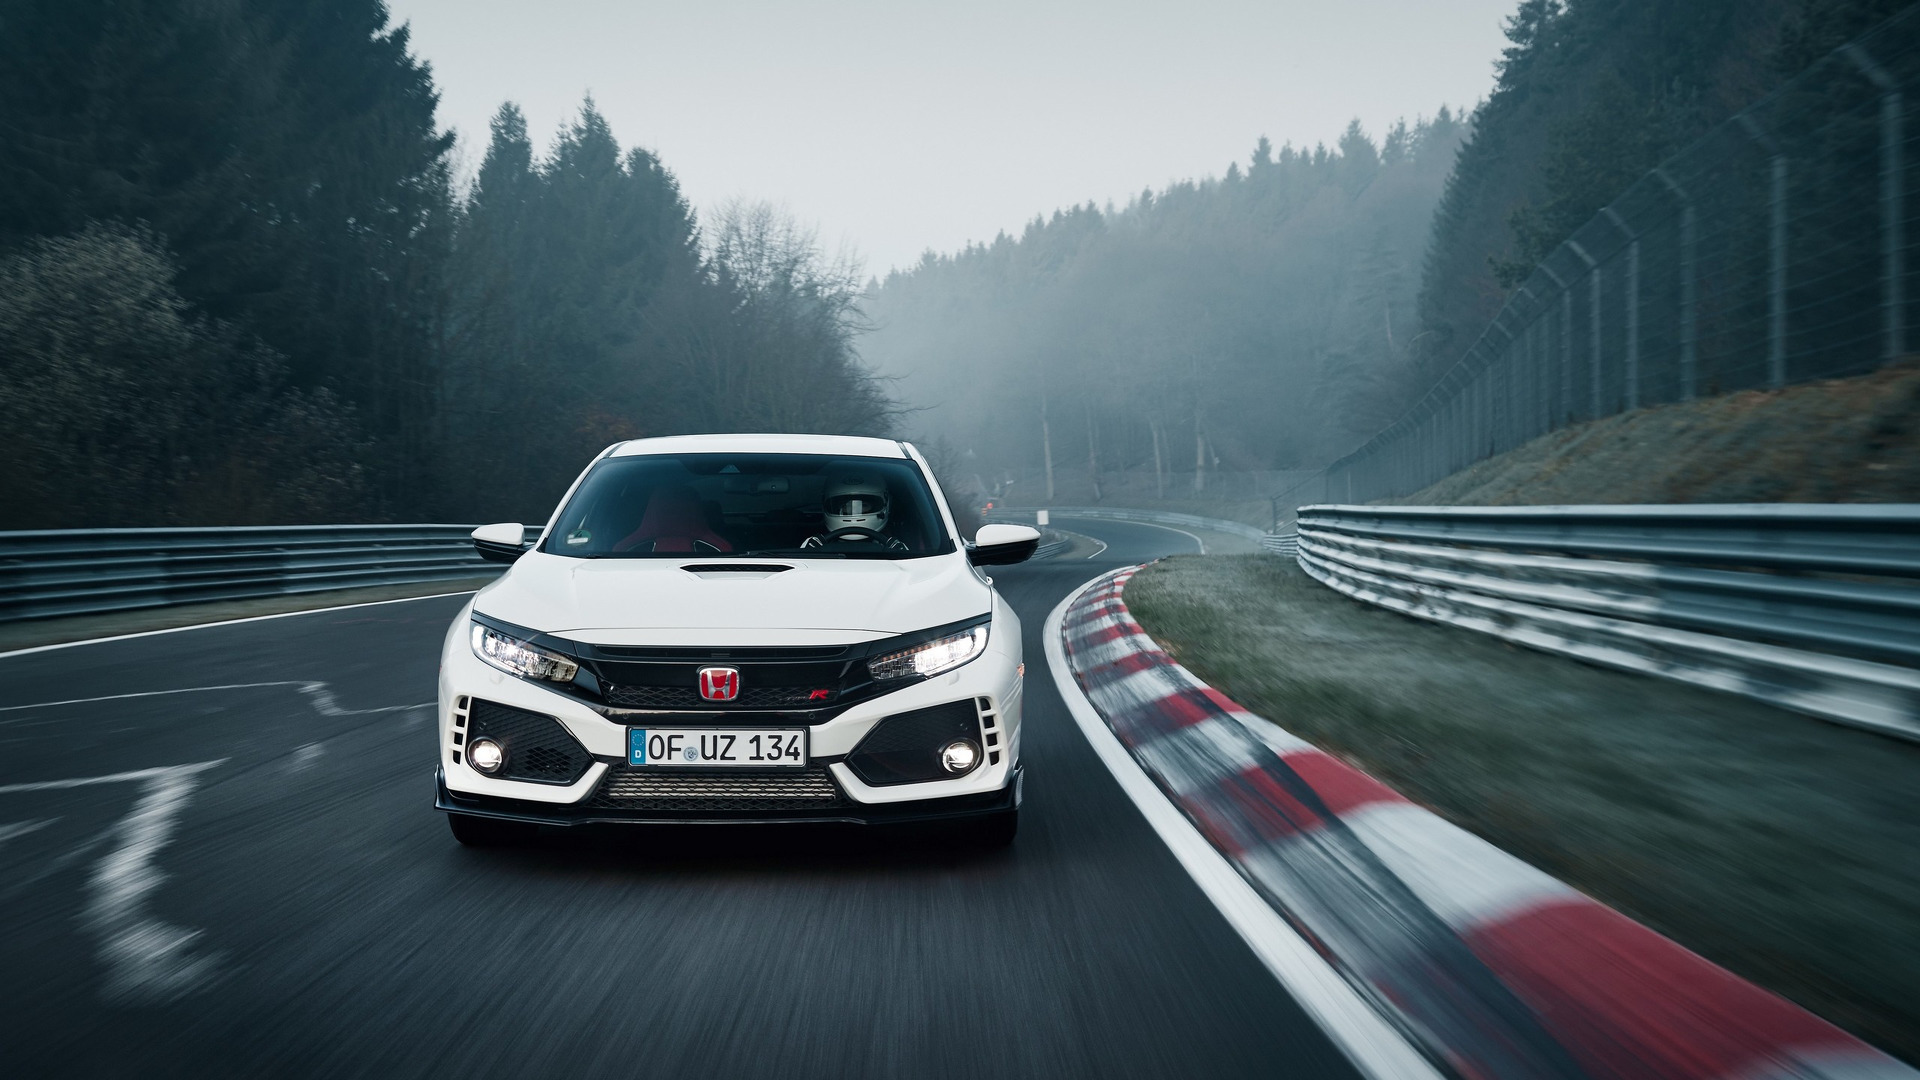 2017 HONDA CIVIC TYPE R SETS NEW FRONT-WHEEL DRIVE LAP RECORD AT NURBURGRING